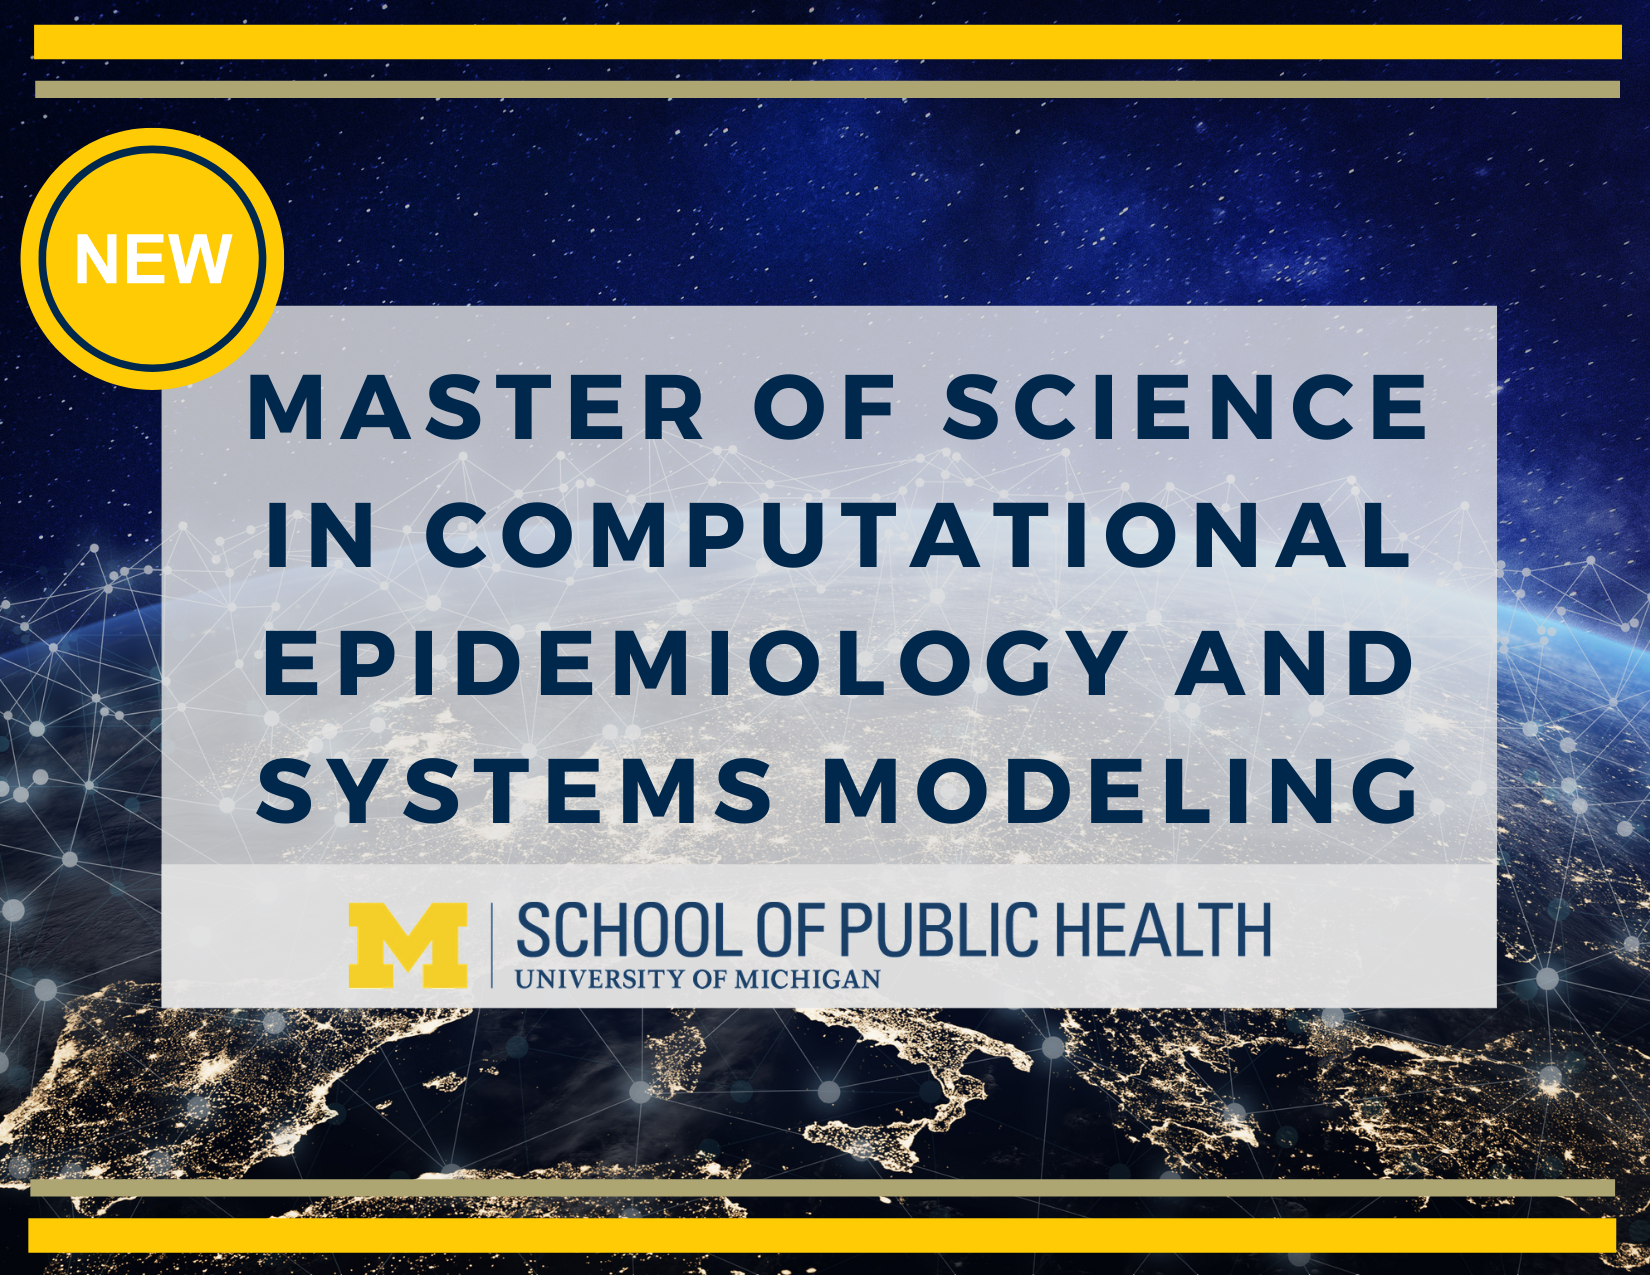 Master of Science in Computational Epidemiology and Systems Modeling